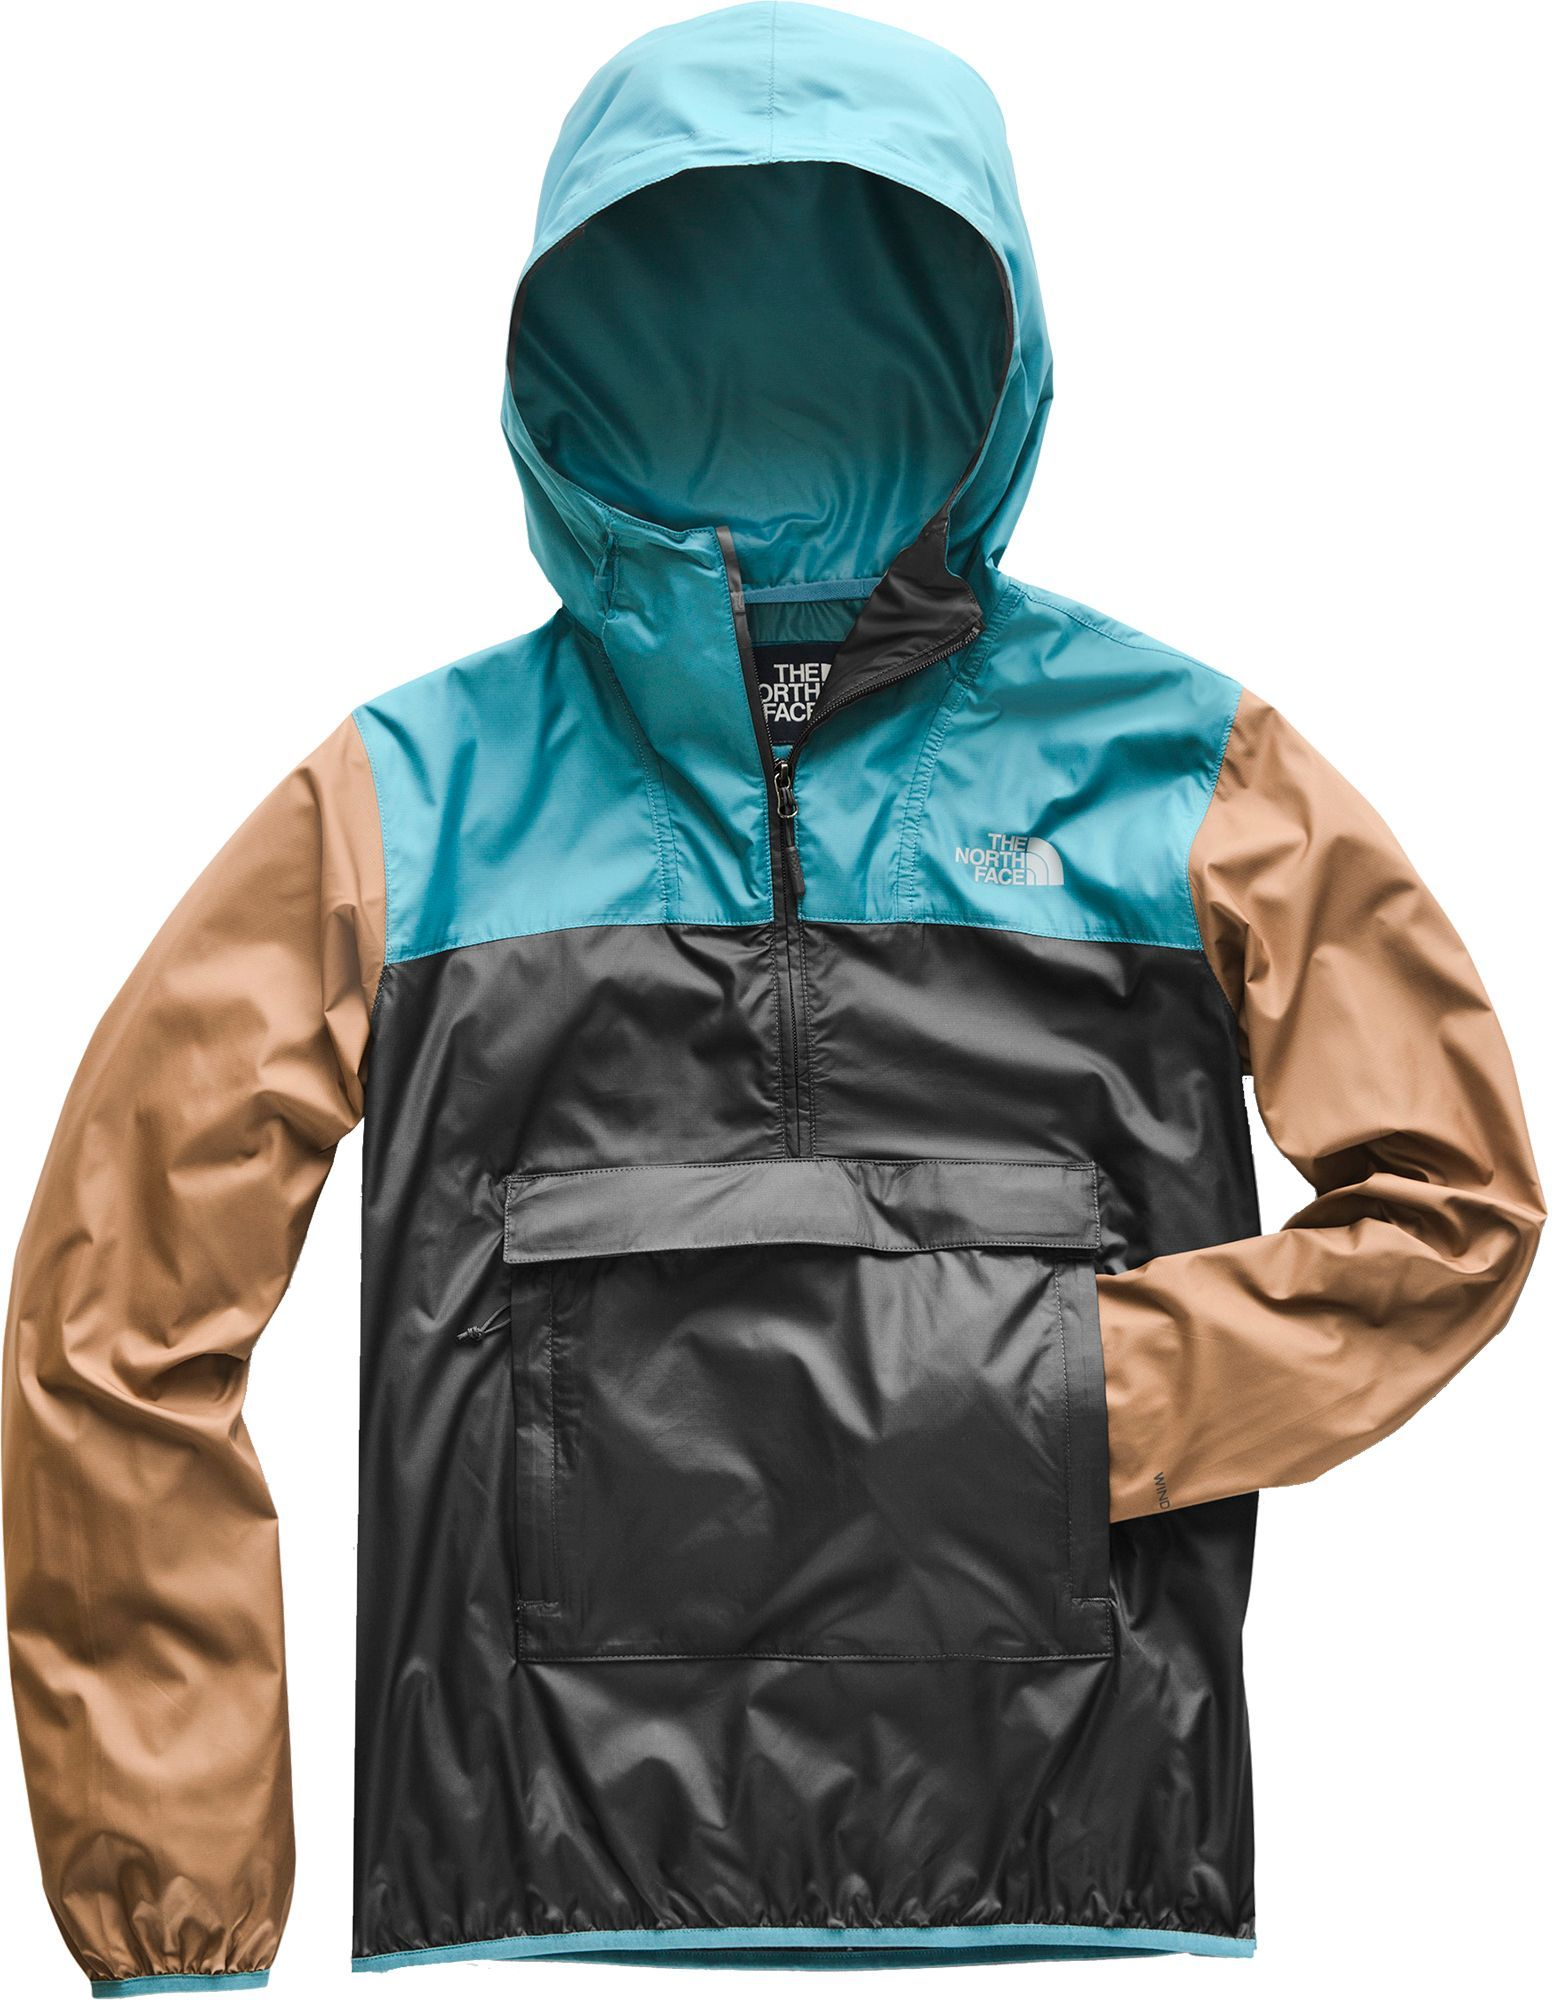 The North Face Men's Fanorak Pullover Jacket | Jackets